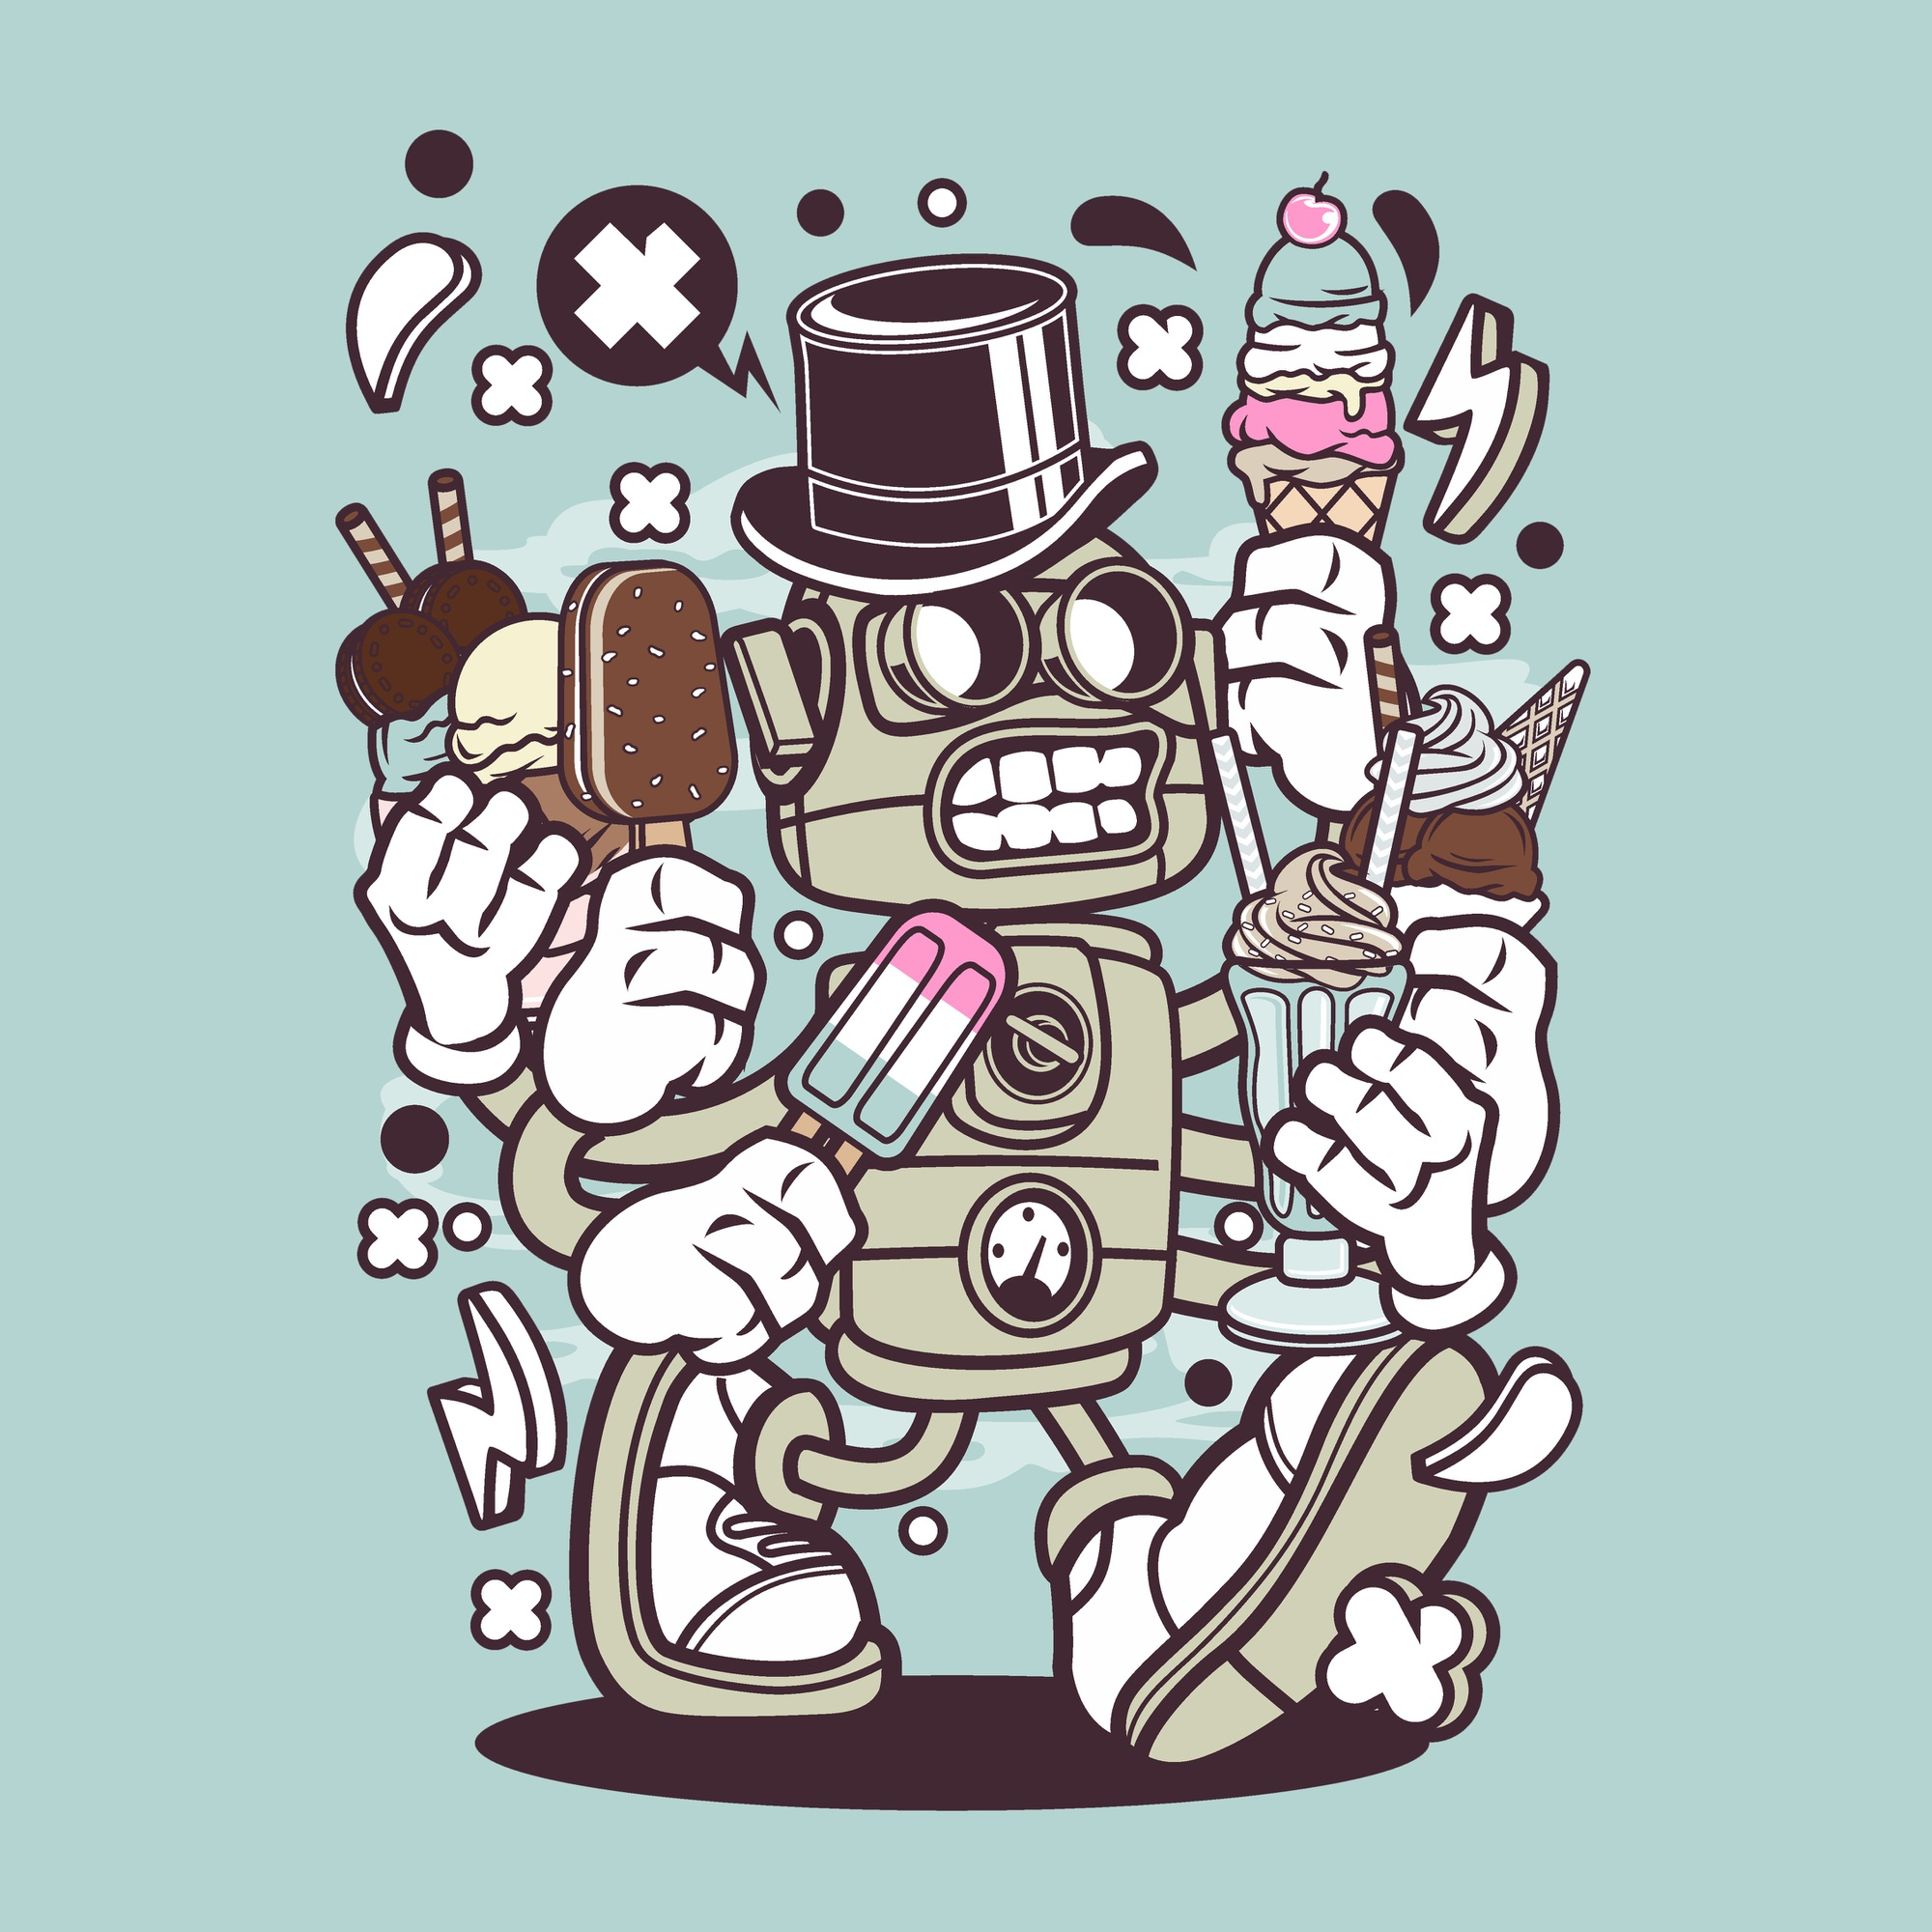 Ice Cream Robot Cartoon